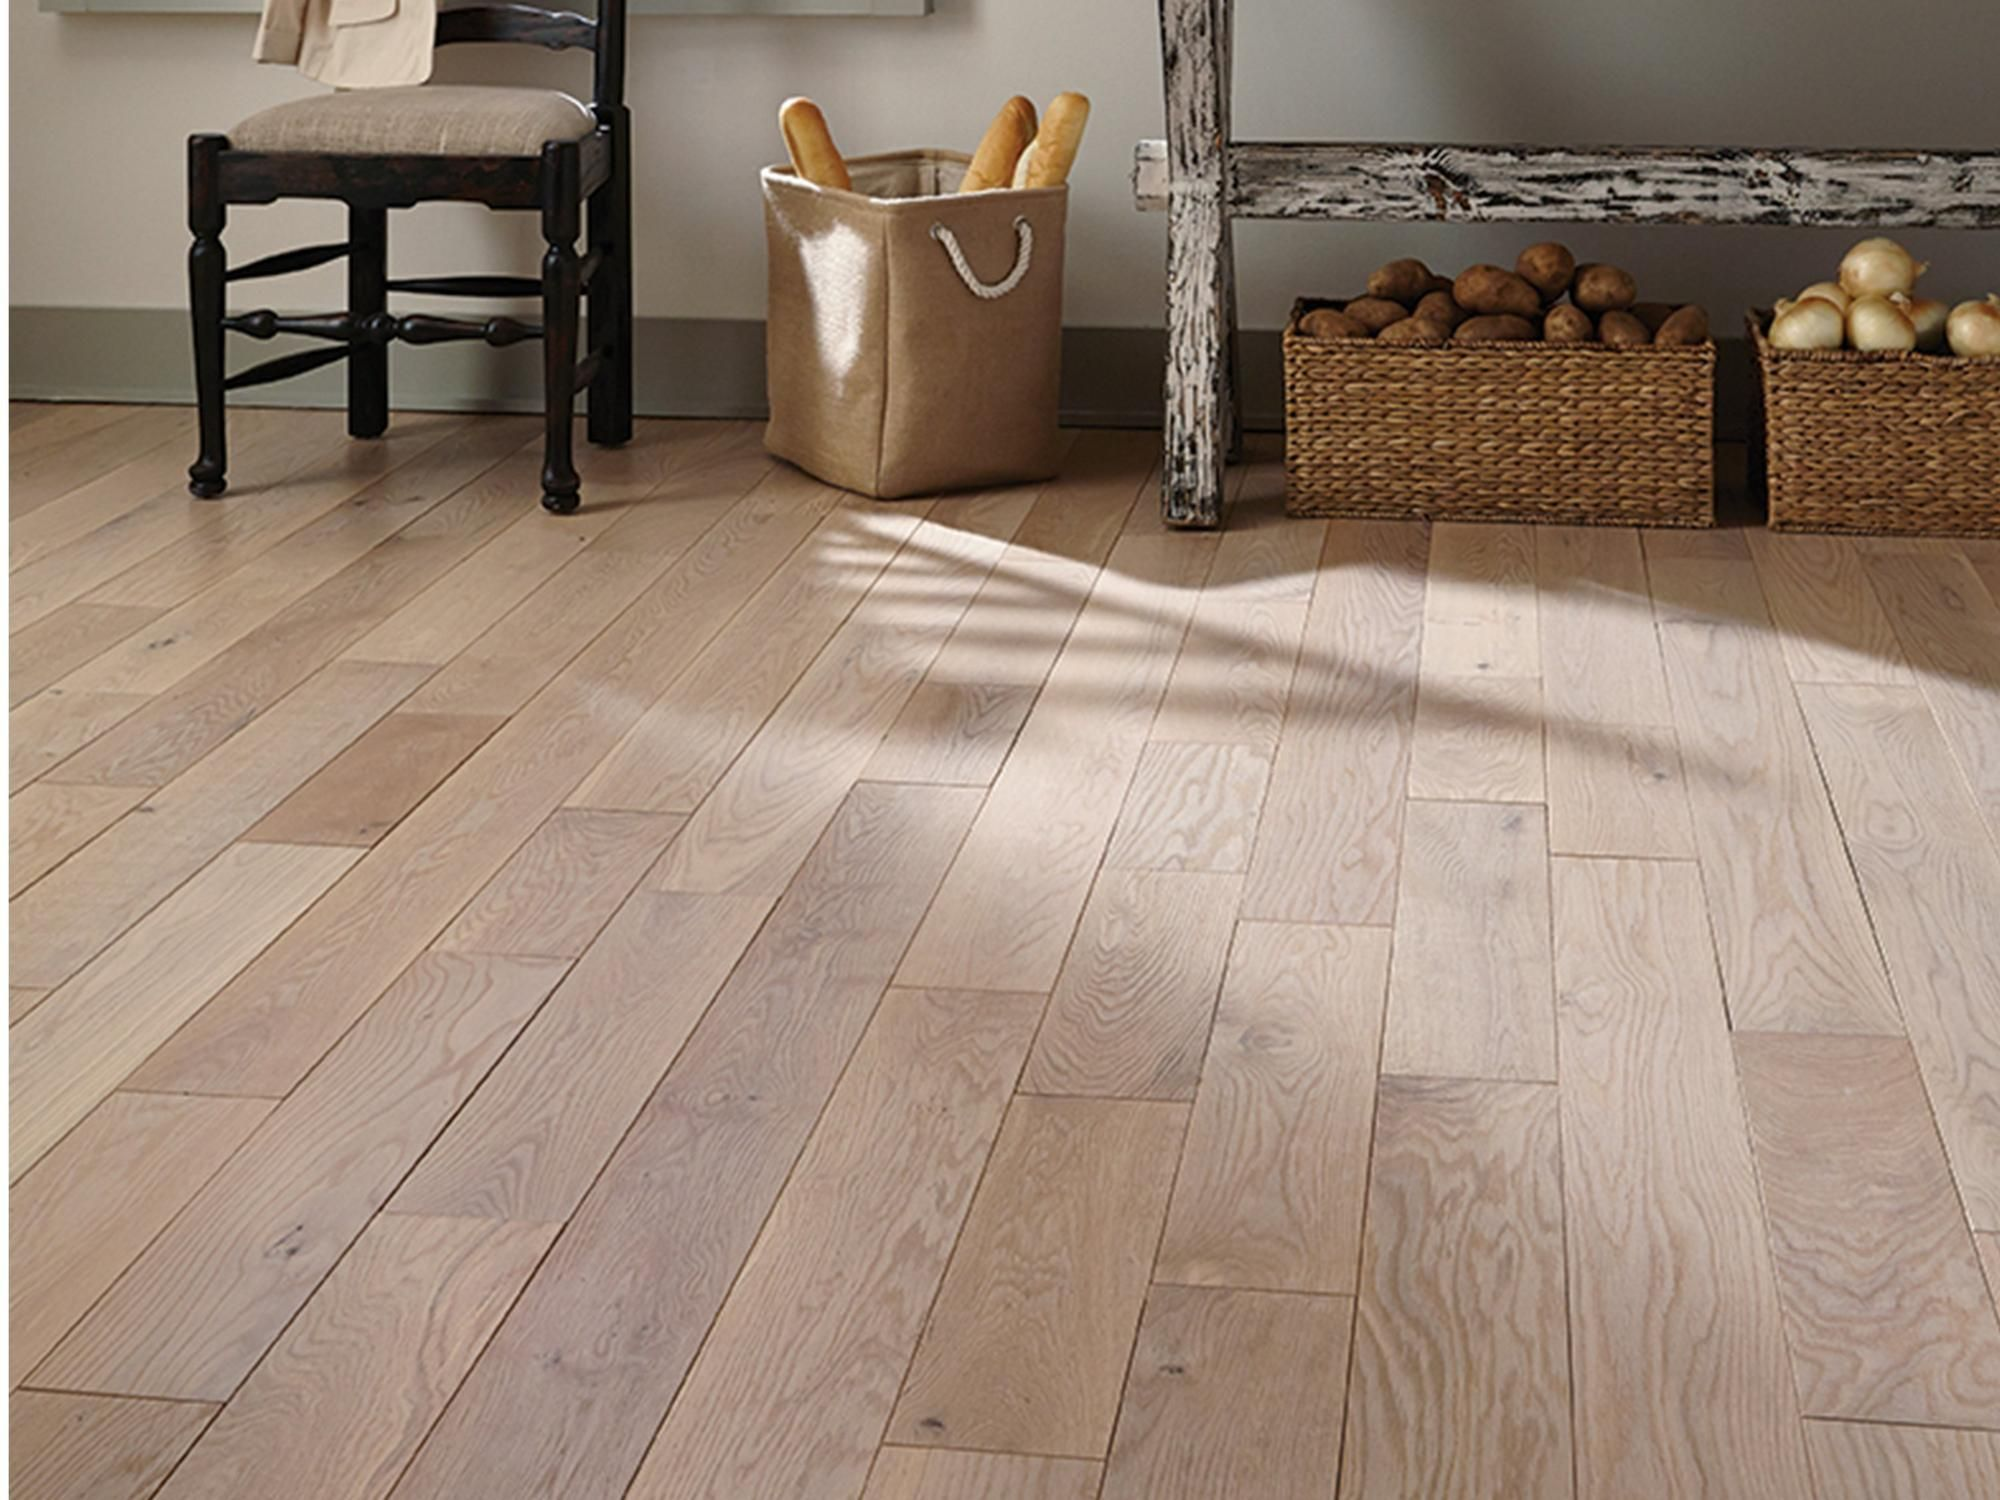 Iceberg Oak Wire Brushed Solid Hardwood In 2020 Herringbone Wood Floor Solid Hardwood Floors Solid Hardwood